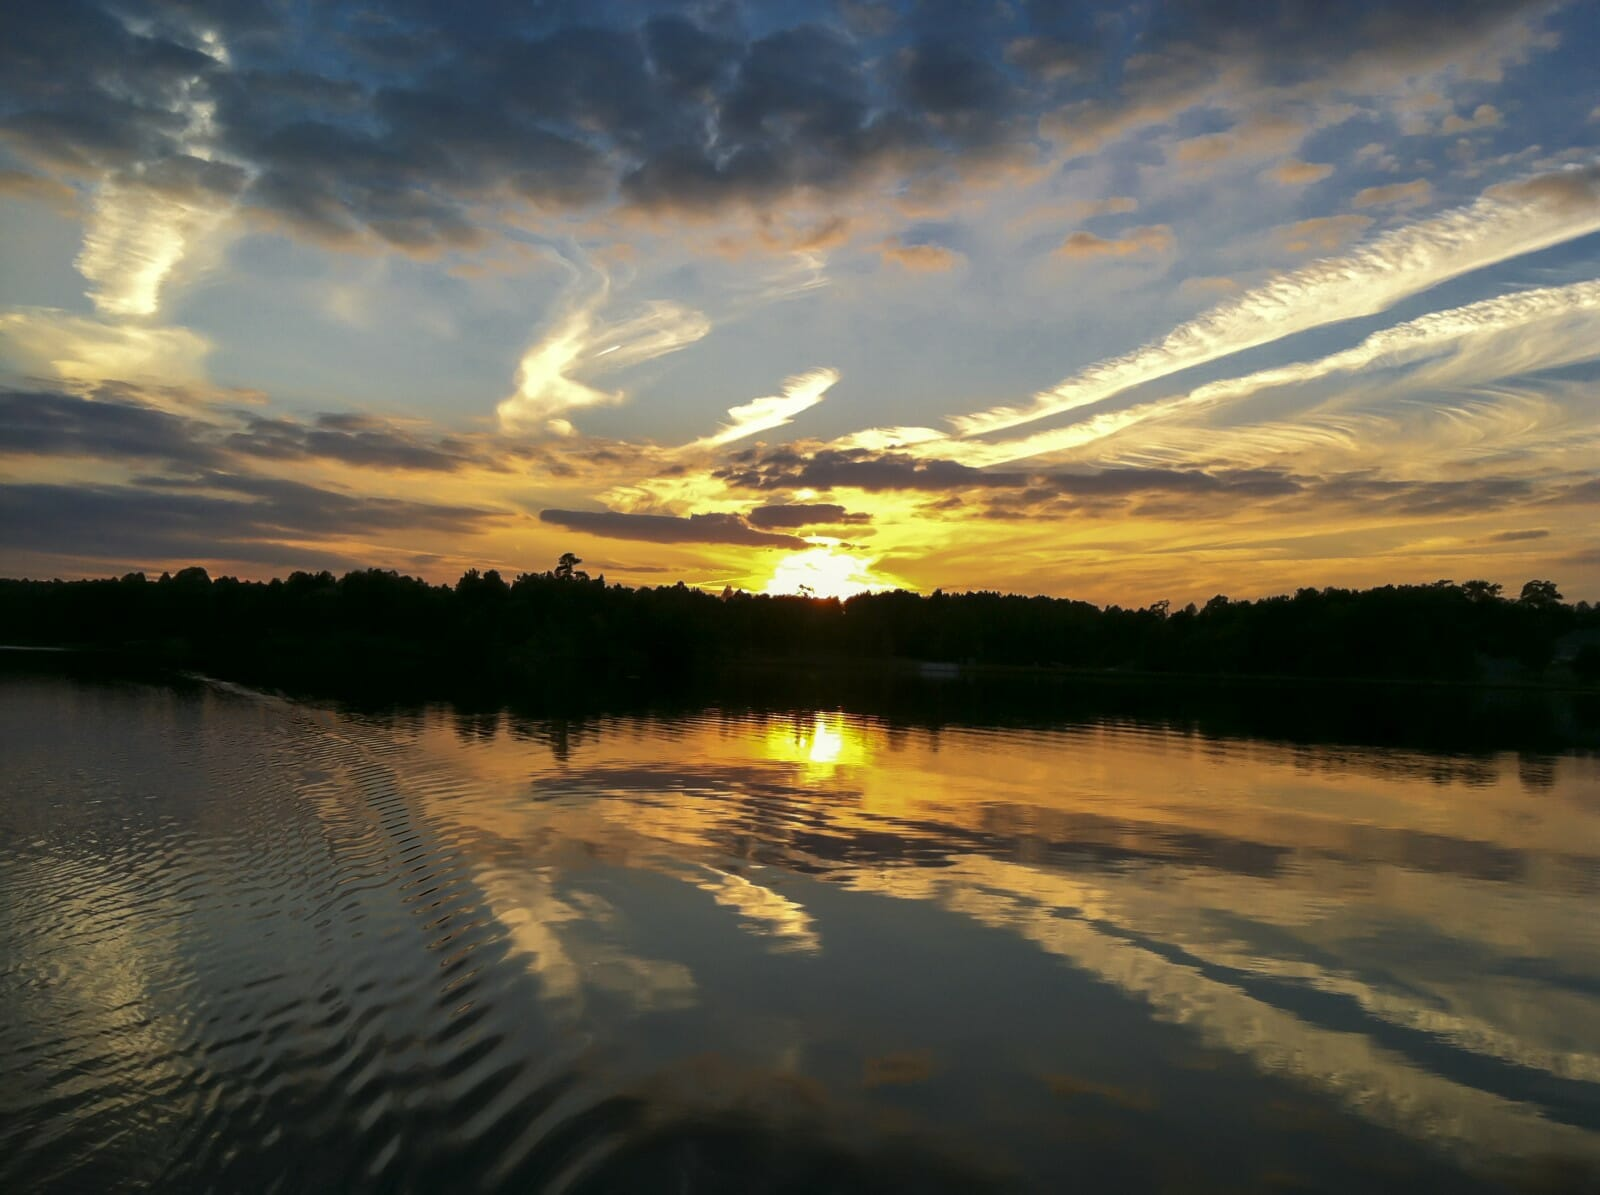 Sunset on the water